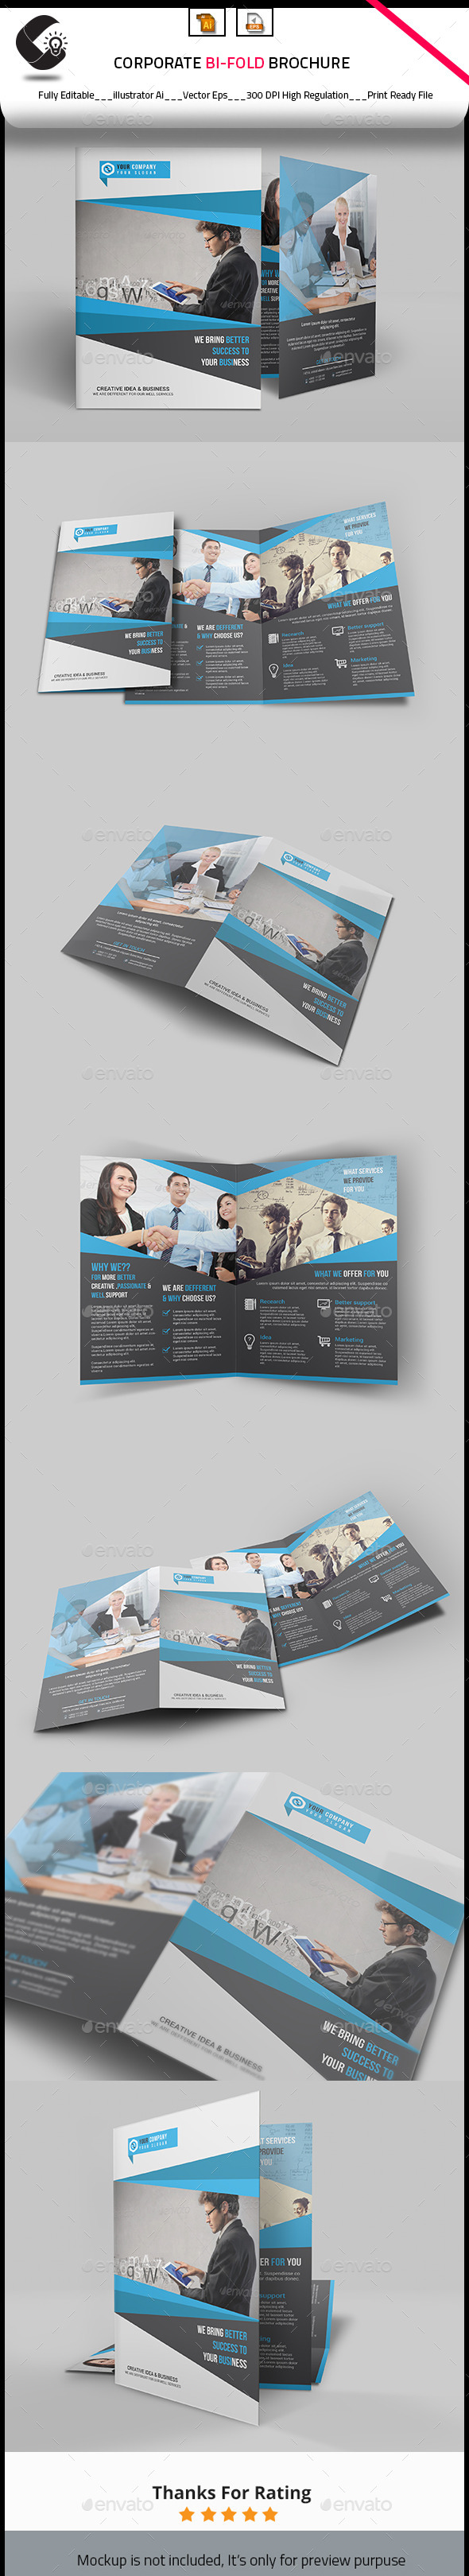 GraphicRiver Corporate Brochure Design 10544383